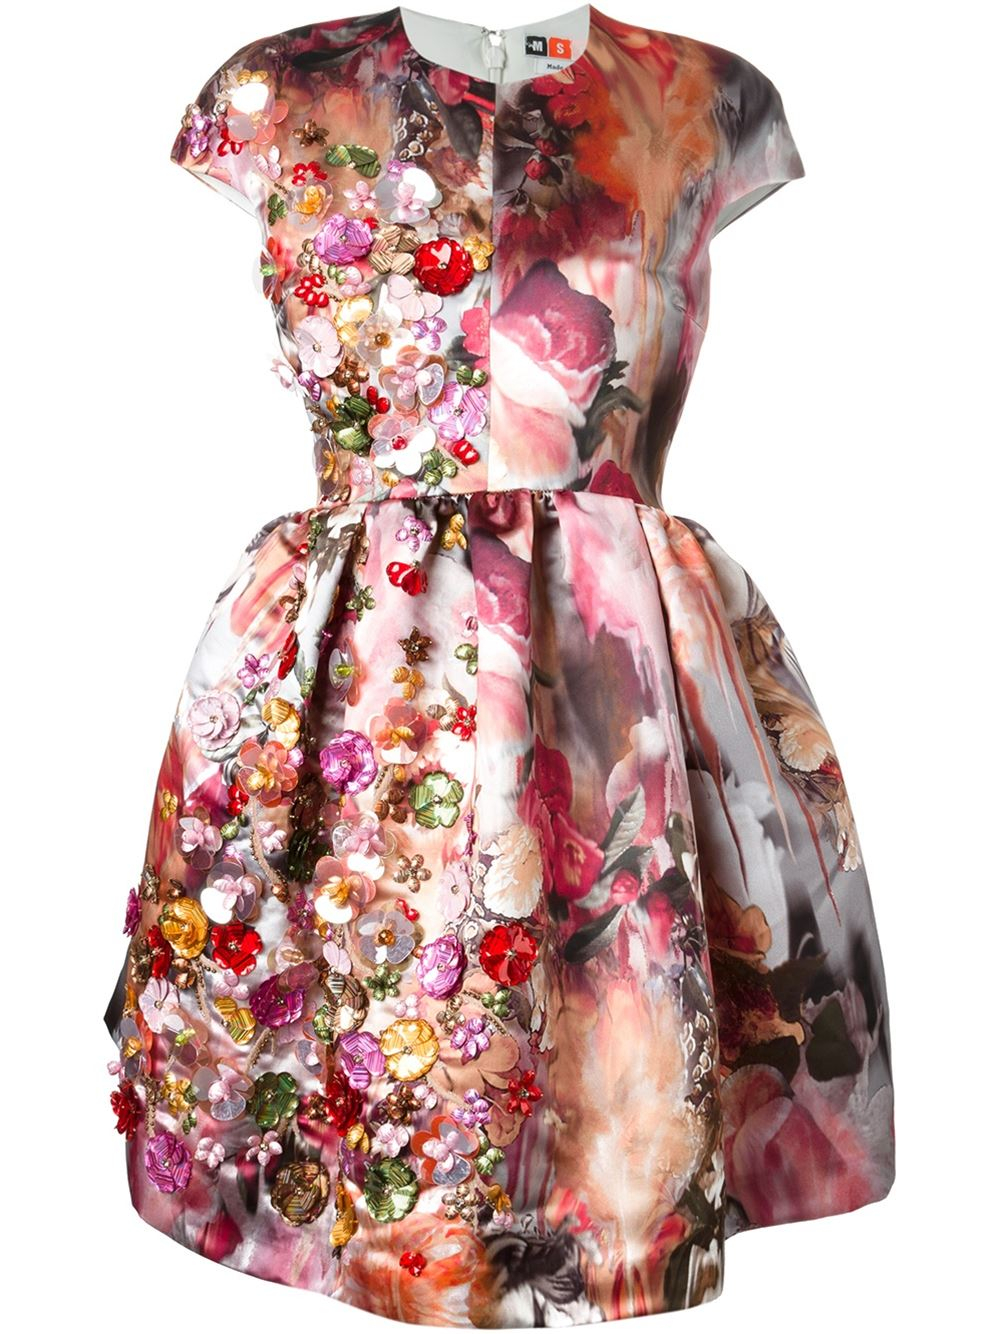 Dress with multicolor floral pattern Msgm Cheap Visit New Discount Cheap Price New Arrival Cheap Price fktz35